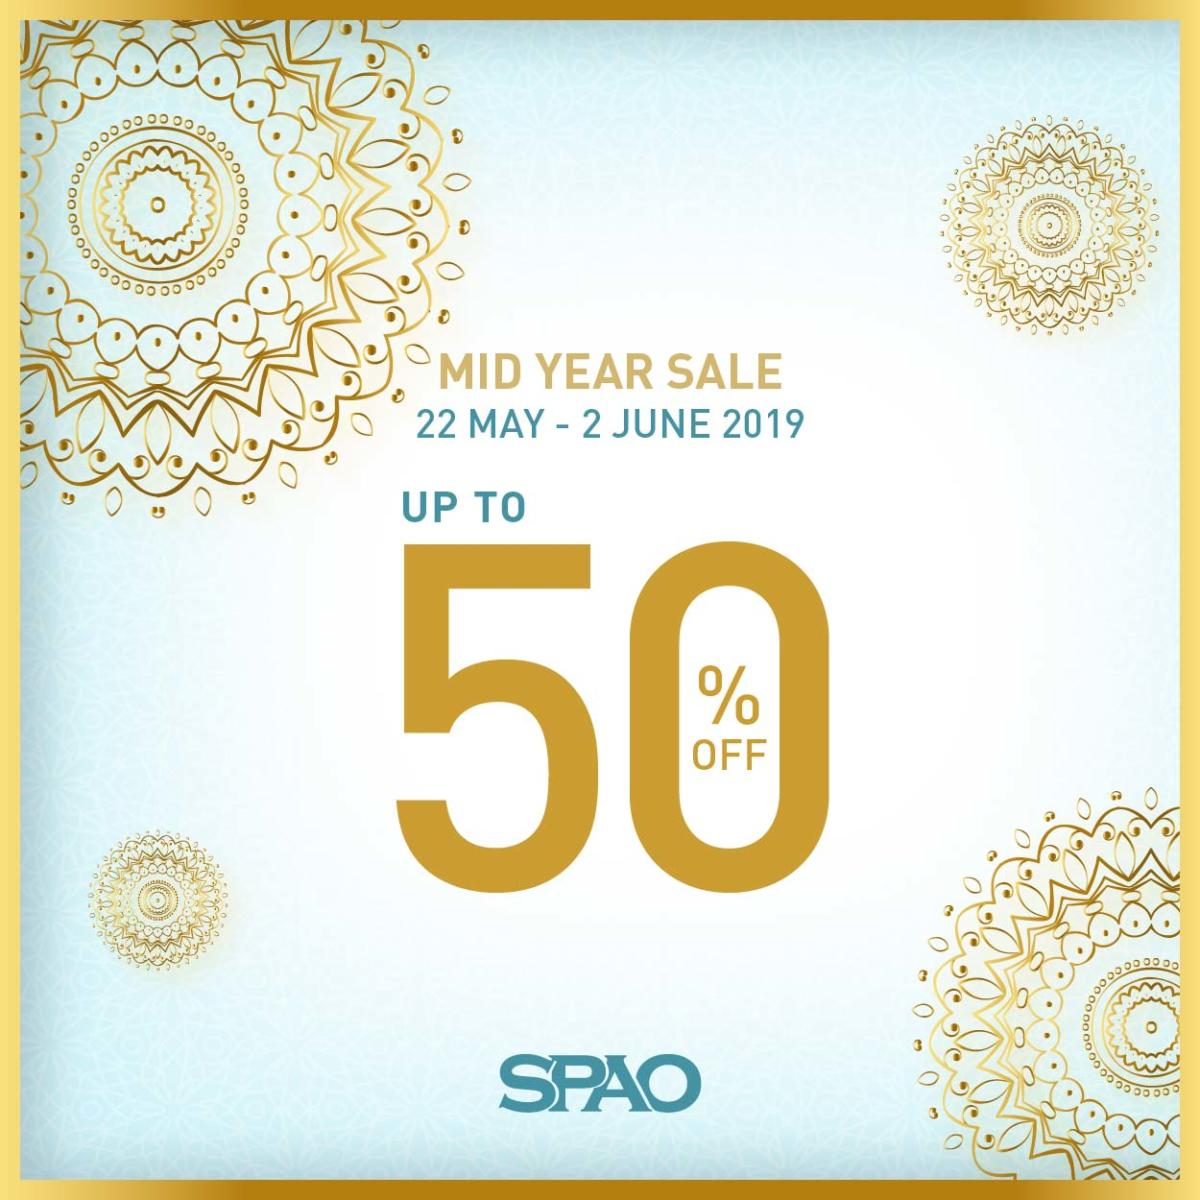 SPAO Mid Year Sale 50%_FB-05